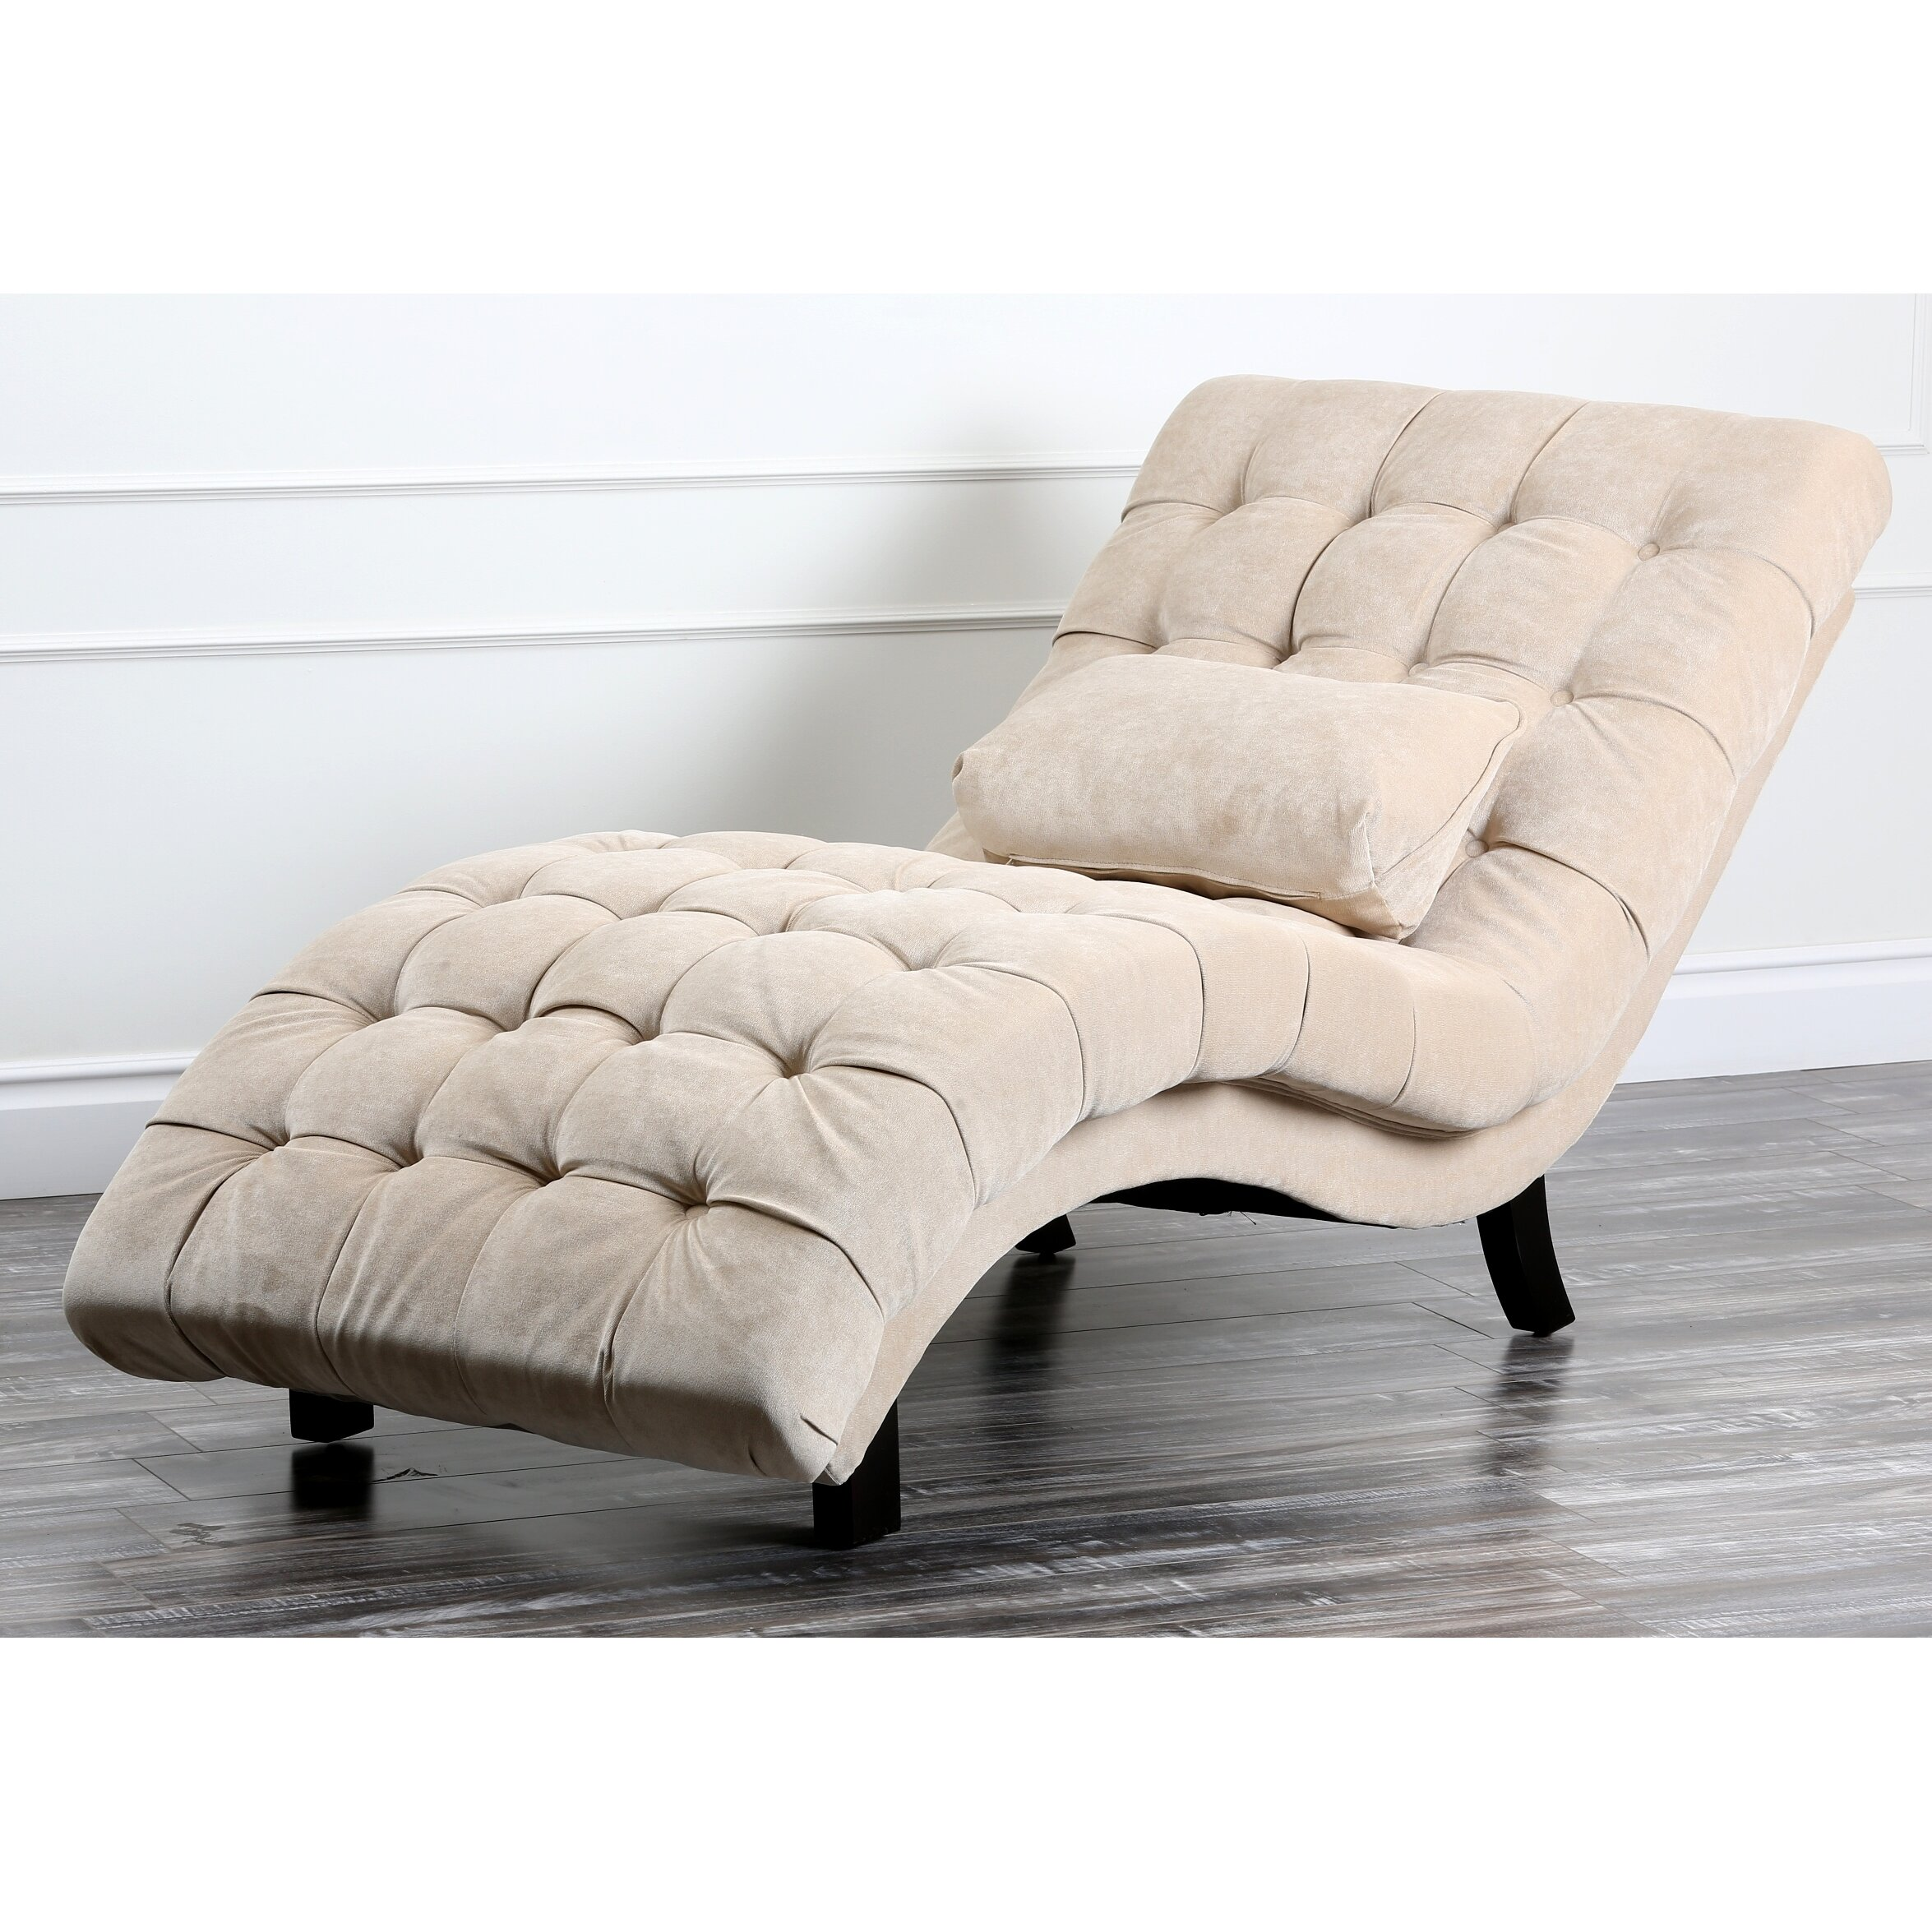 House of hampton lizard fabric chaise lounge reviews for Buy chaise lounge